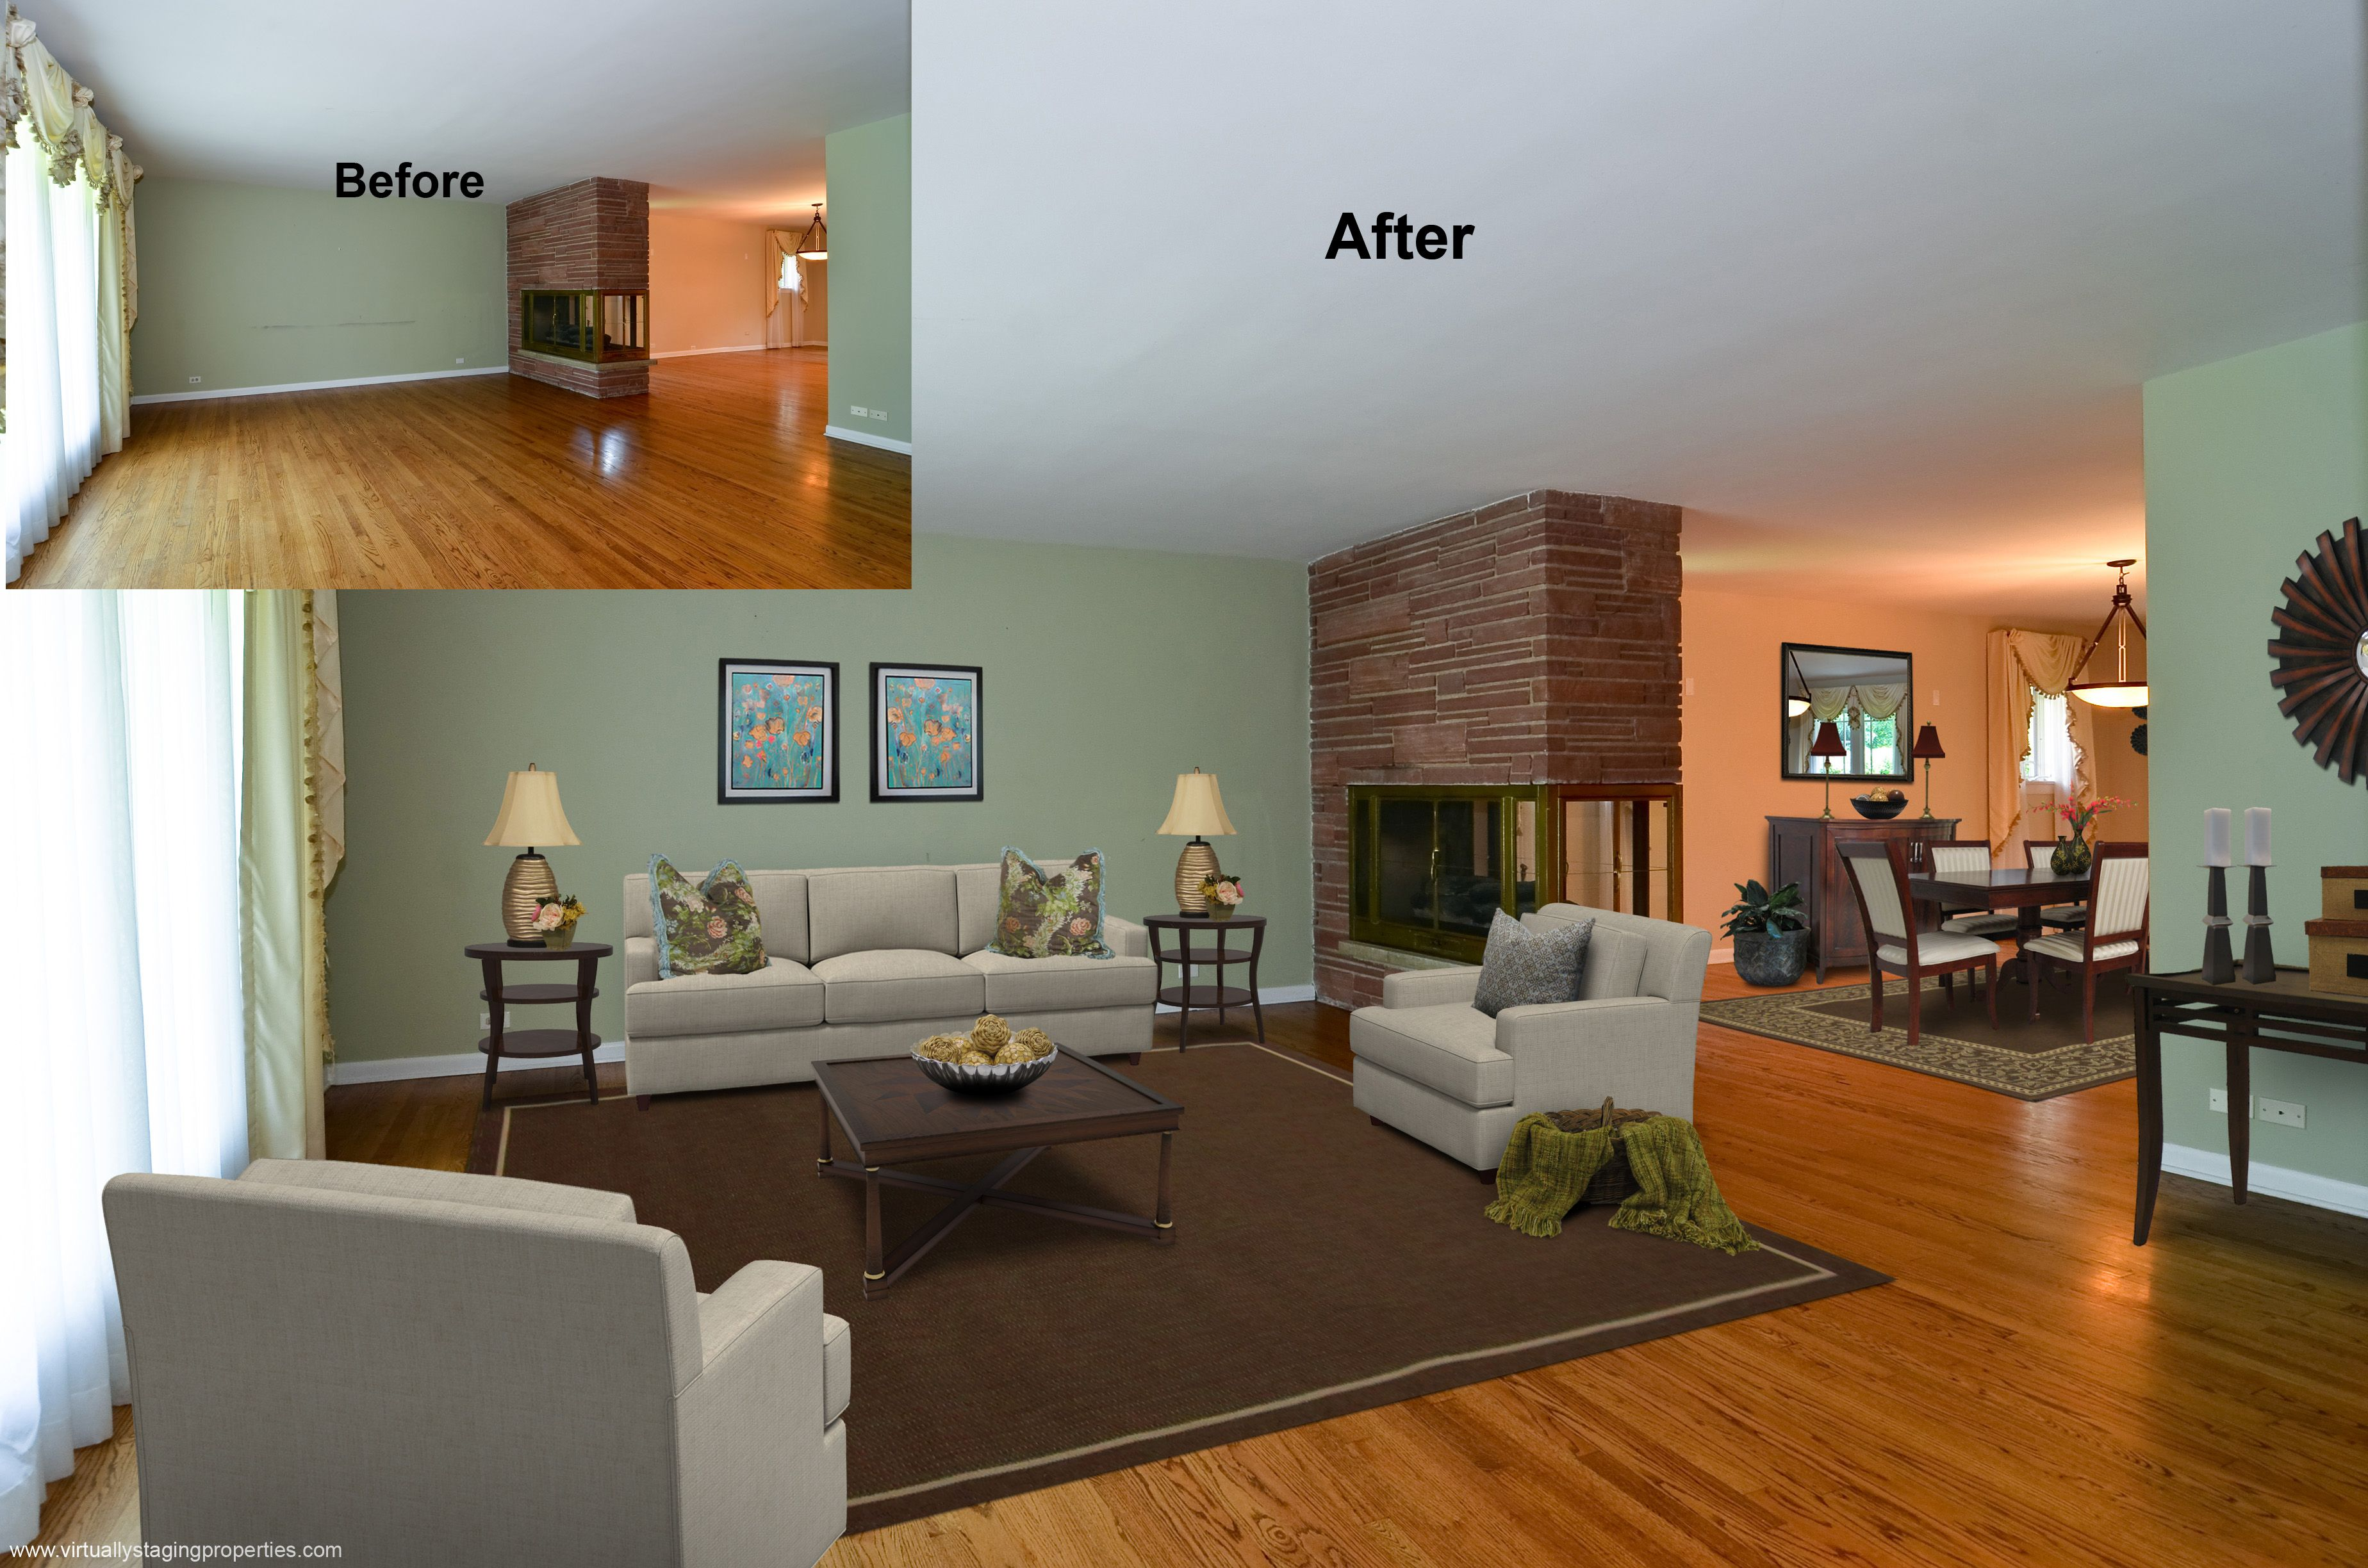 Virtual Staging Of Living Room And Part Of Dining Room